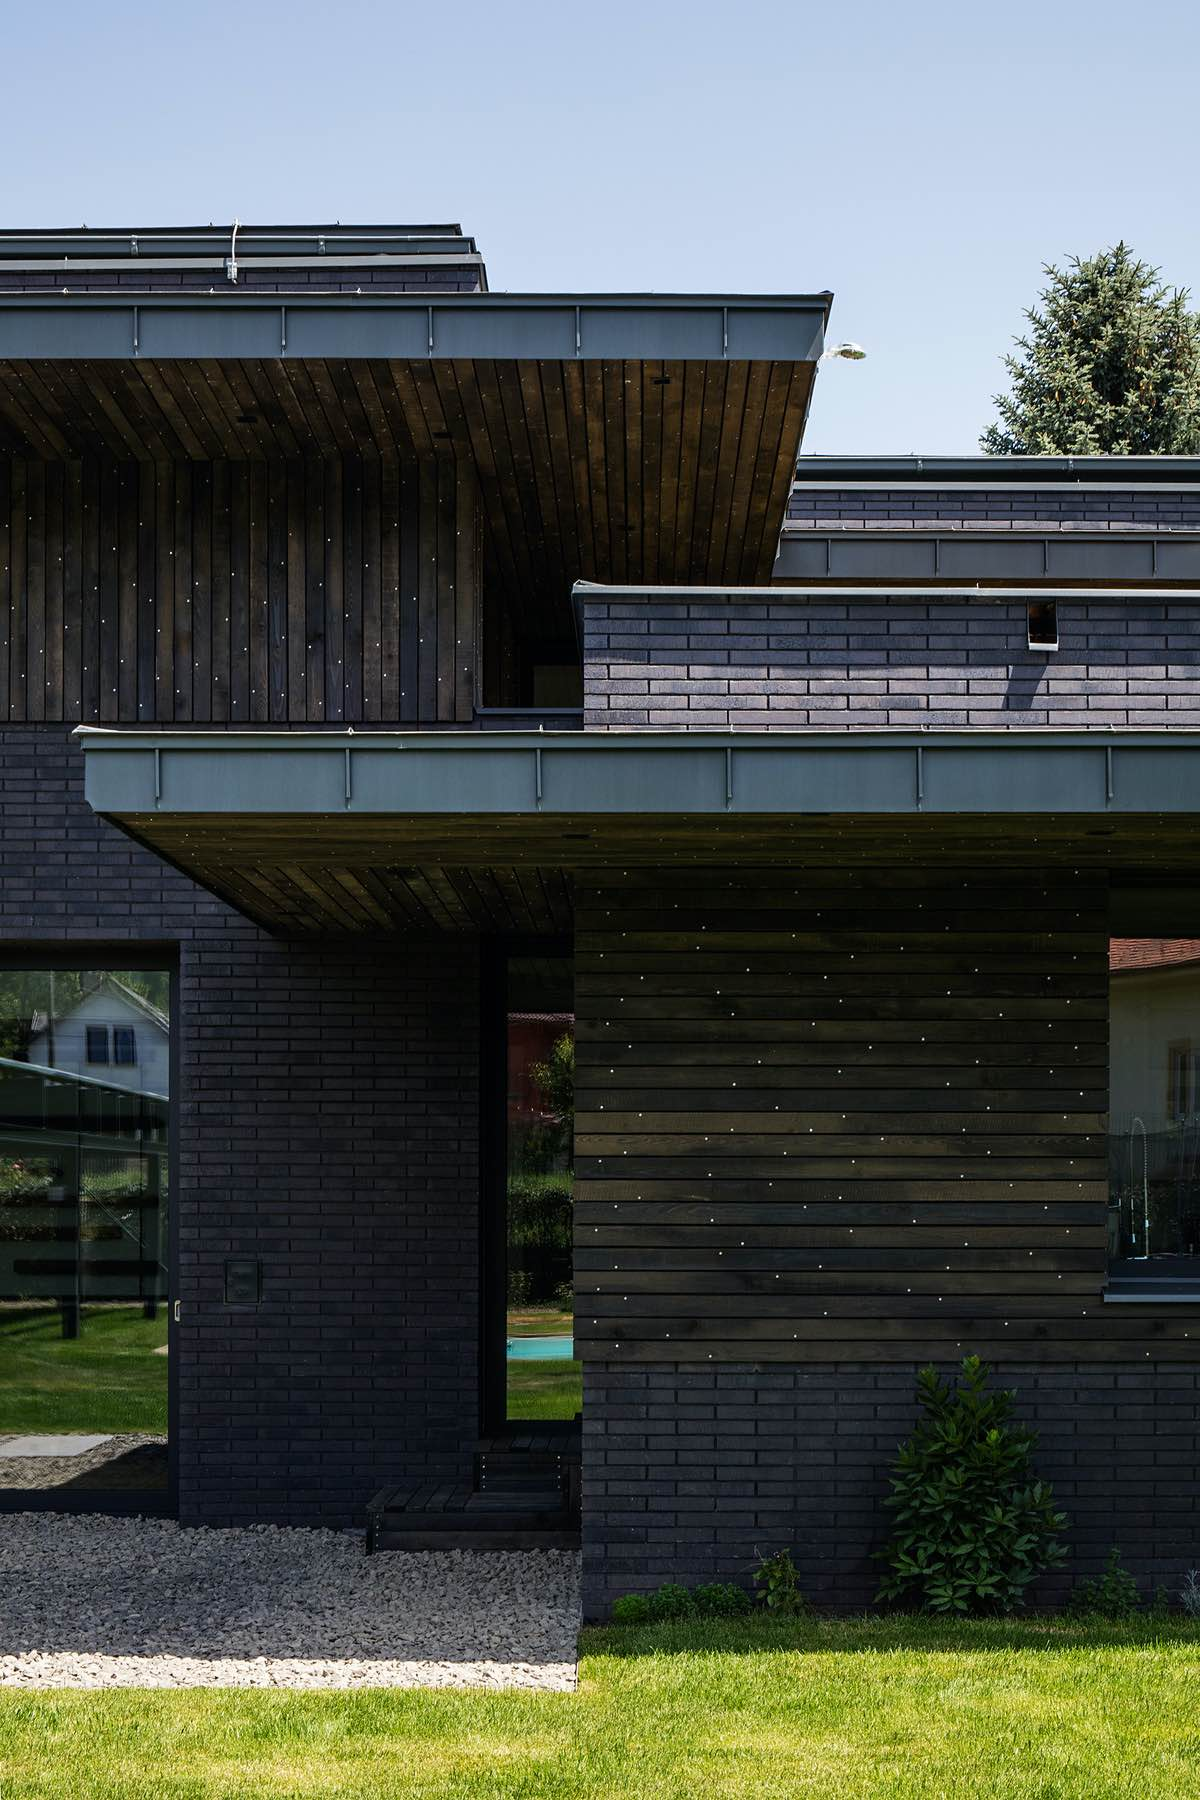 combination of brick wood and metal used in the exterior design